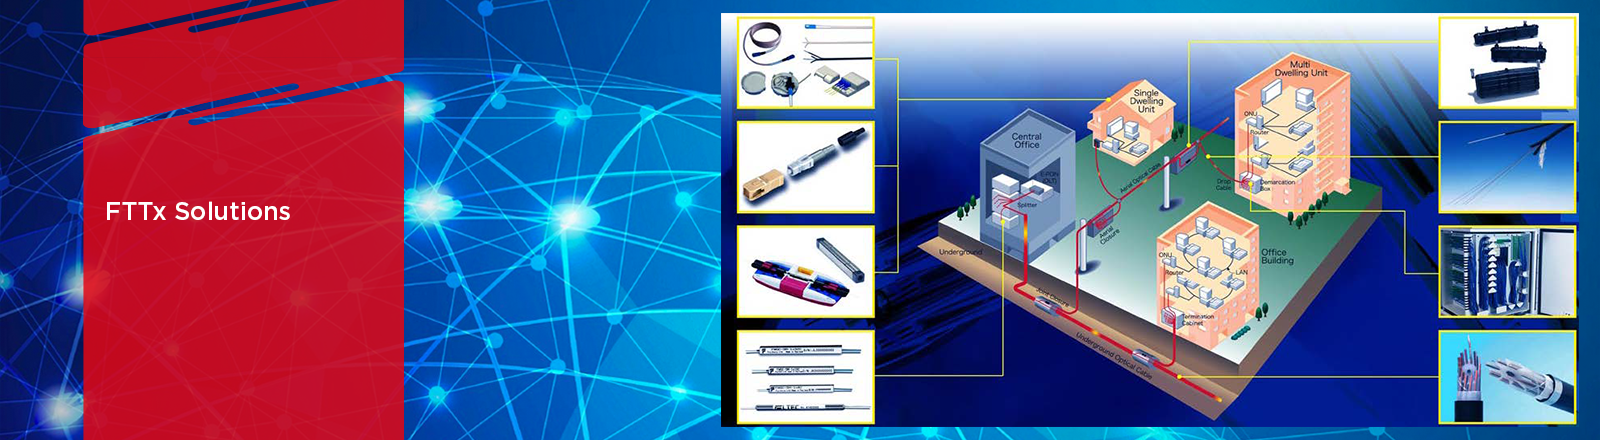 FTTH-Solutions-copy